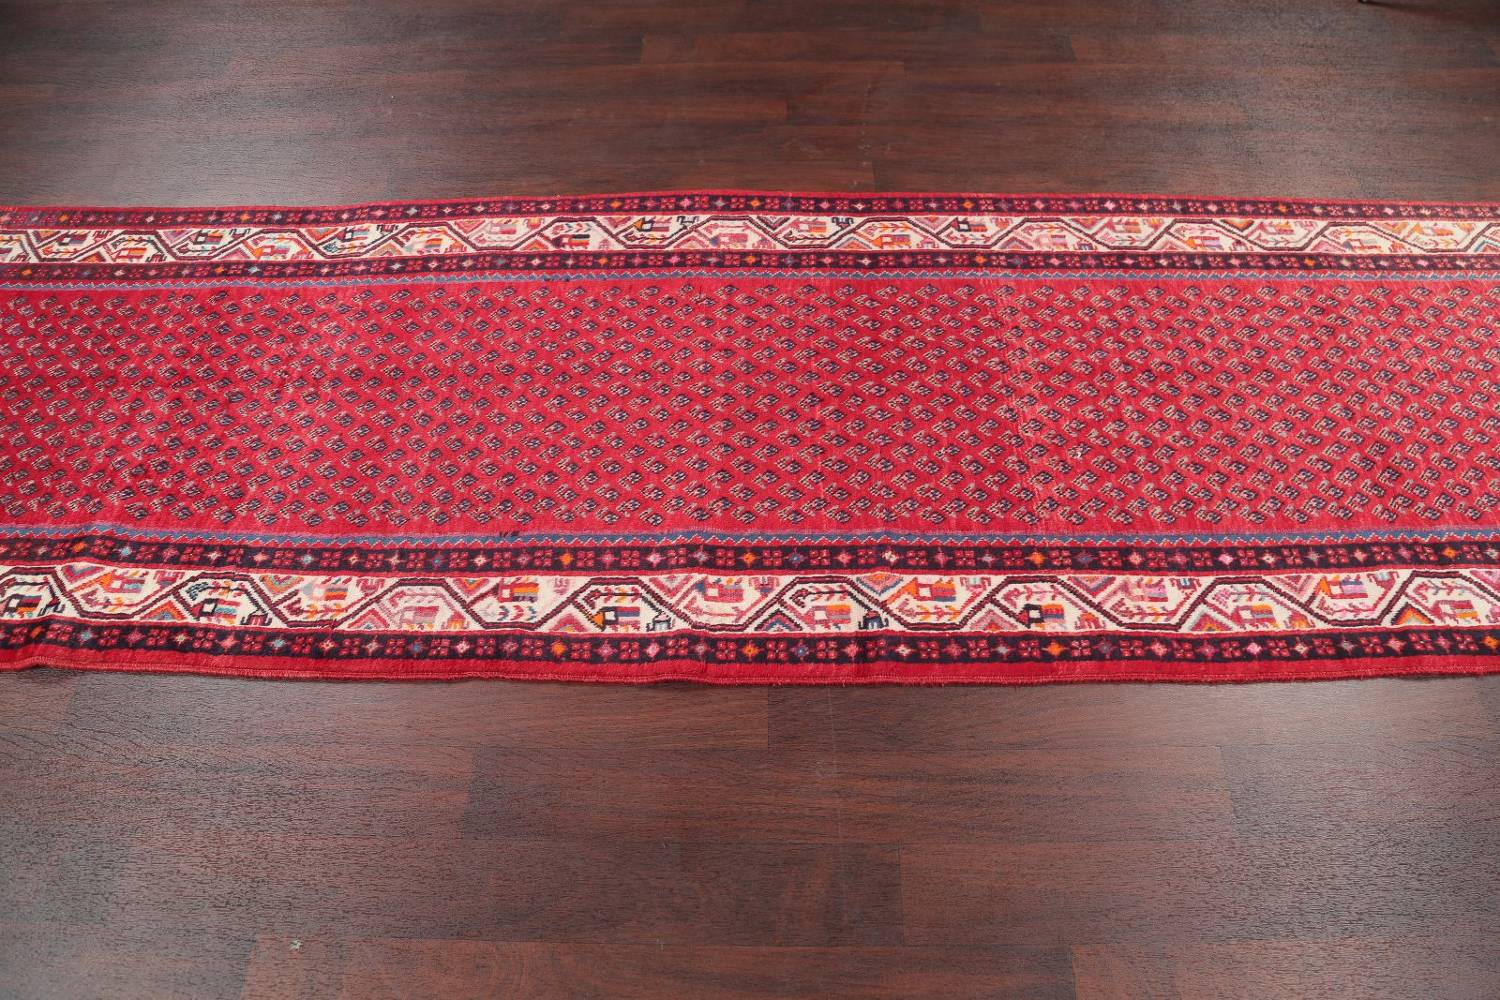 One-of-a-Kind Boteh Botemir Persian Runner Rug 3x13 image 14